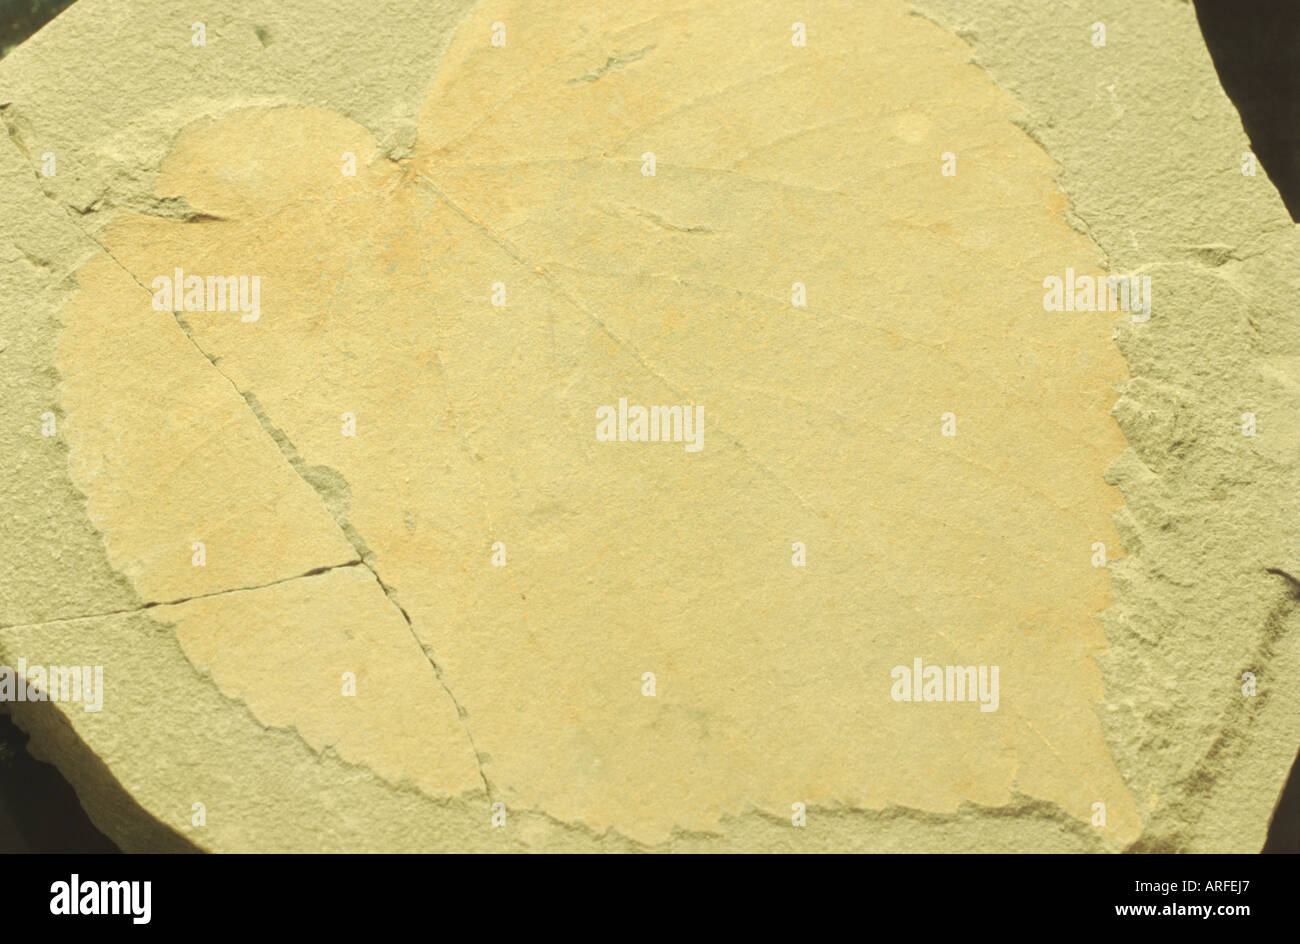 lime tree species (Tilia spec.), fossile leaf from the pliocene, Germany - Stock Image